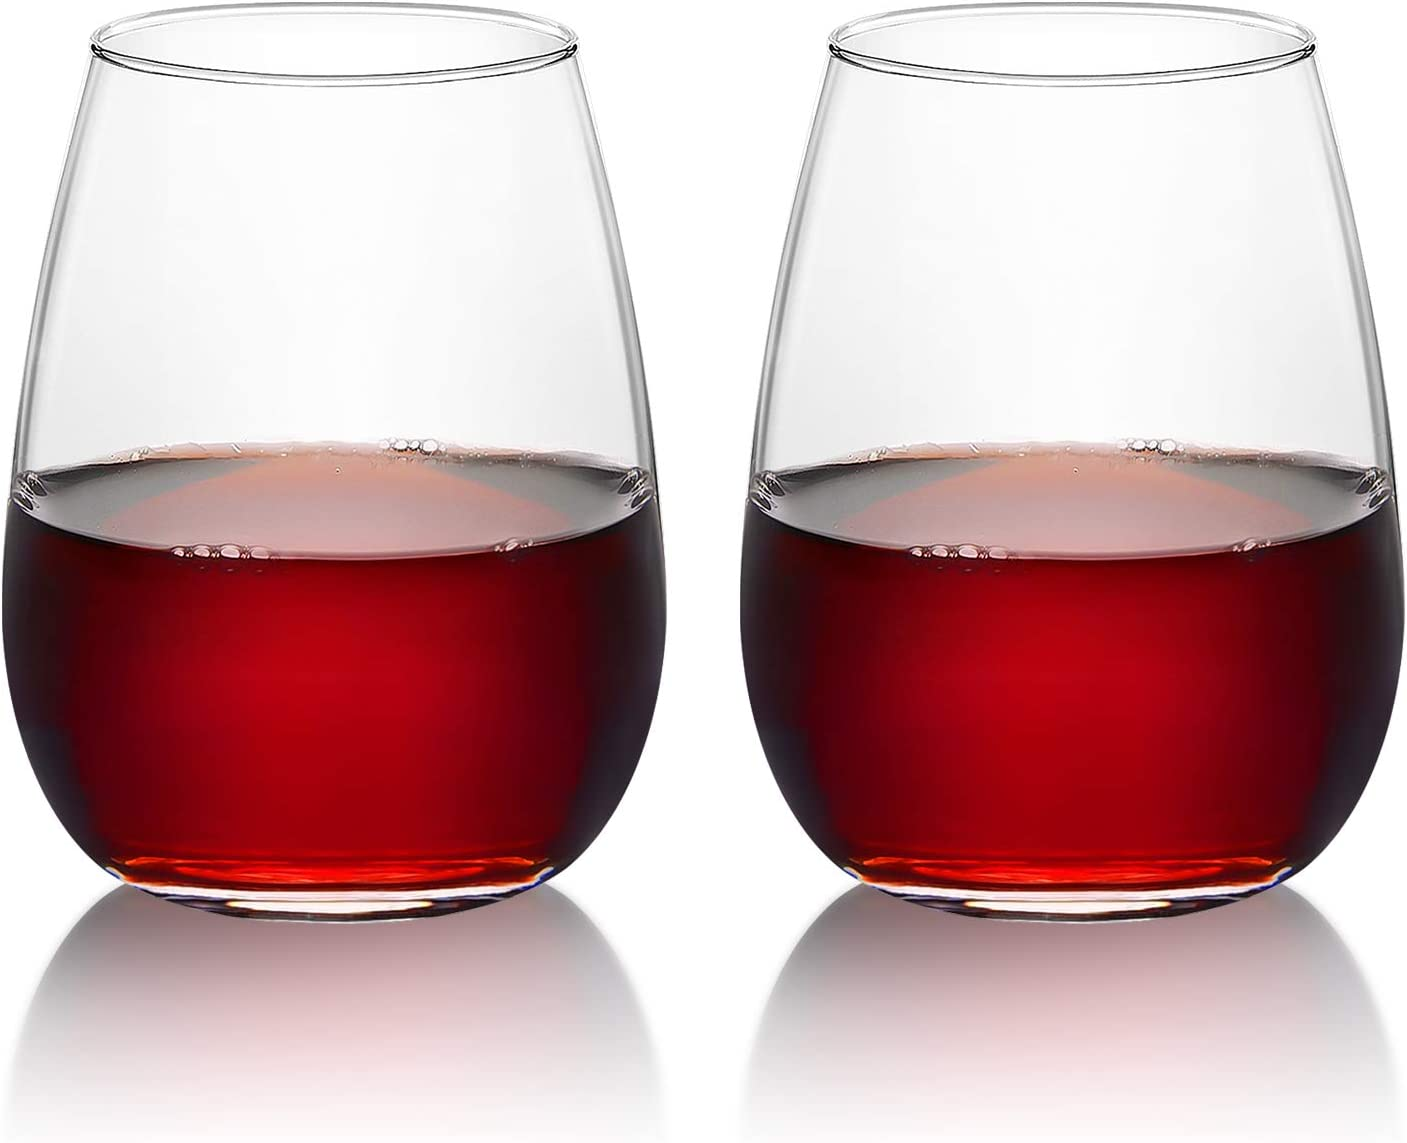 Gtmileo Set of 2 Stemless Wine Glasses, Wine Glass 15Oz for Red or White Wine - Wine Glasses for Women Men Friends - Gift Idea for Birthday Wedding Engagement Party